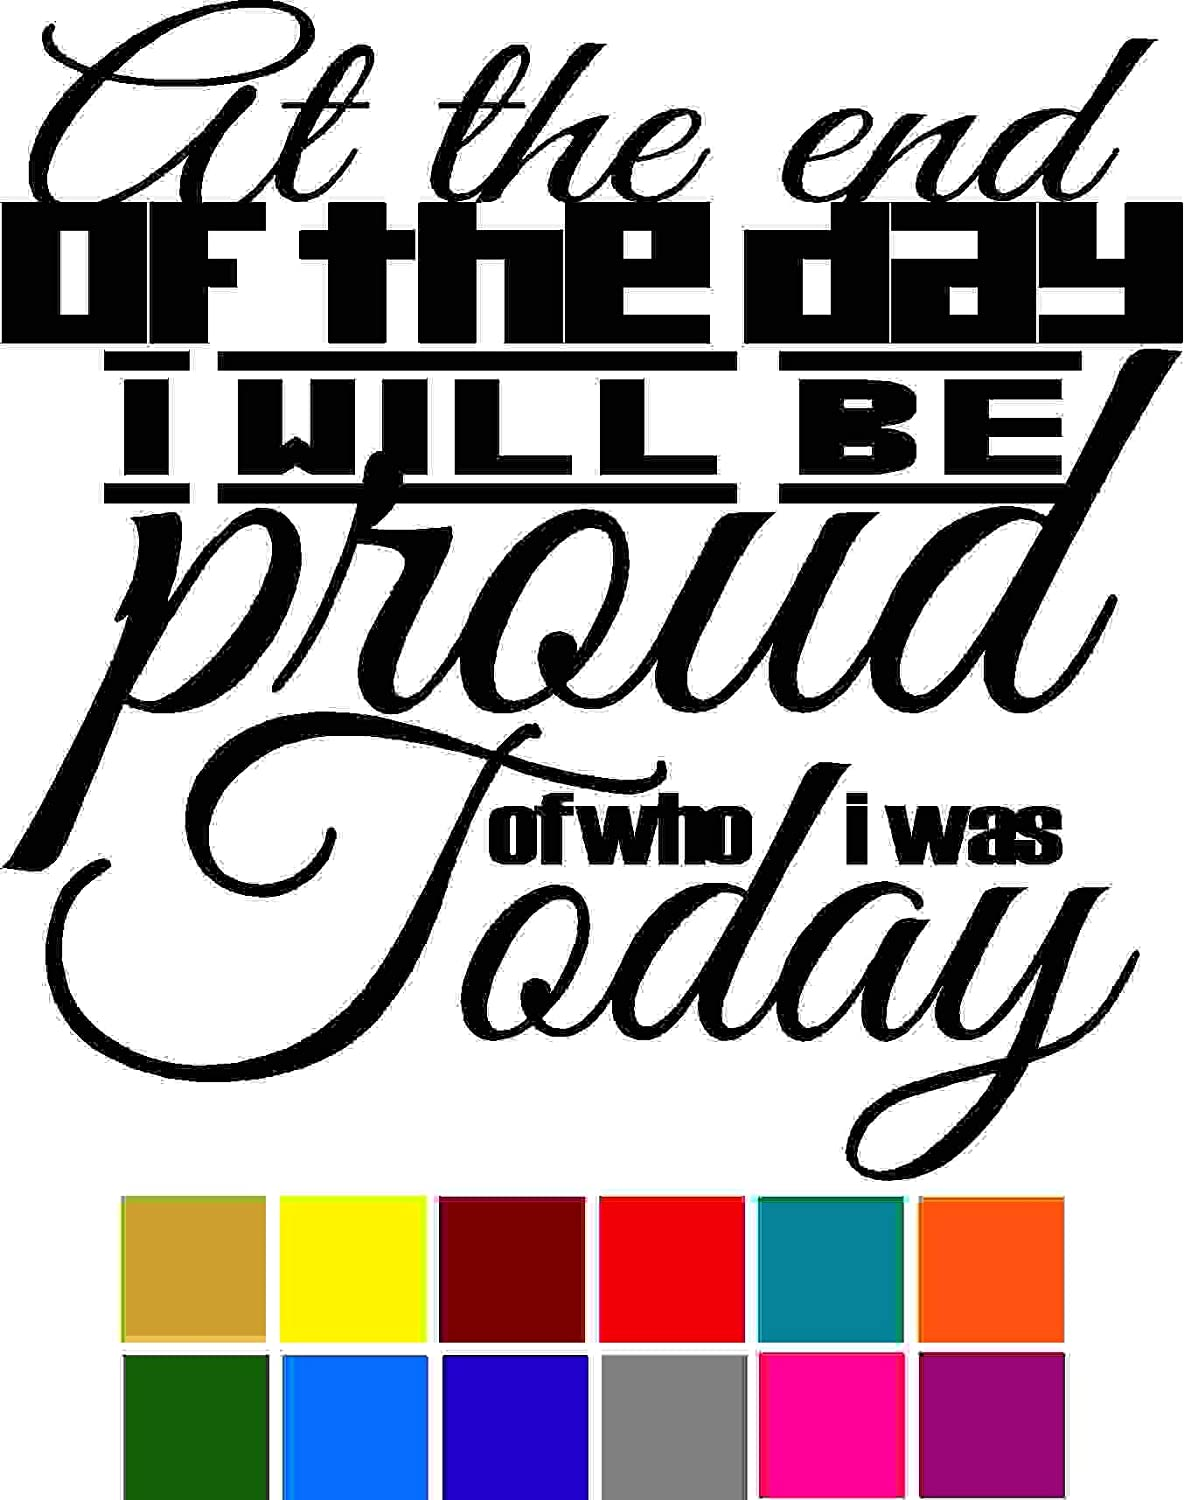 Motivation Quote At The End Of The Day I Will Be Proud Of Who I Was Today Decal Sticker Vinyl Car Window Tumblers Wall Laptops Cellphones Phones Tablets Ipads Helmets Motorcycles V and T Gifts